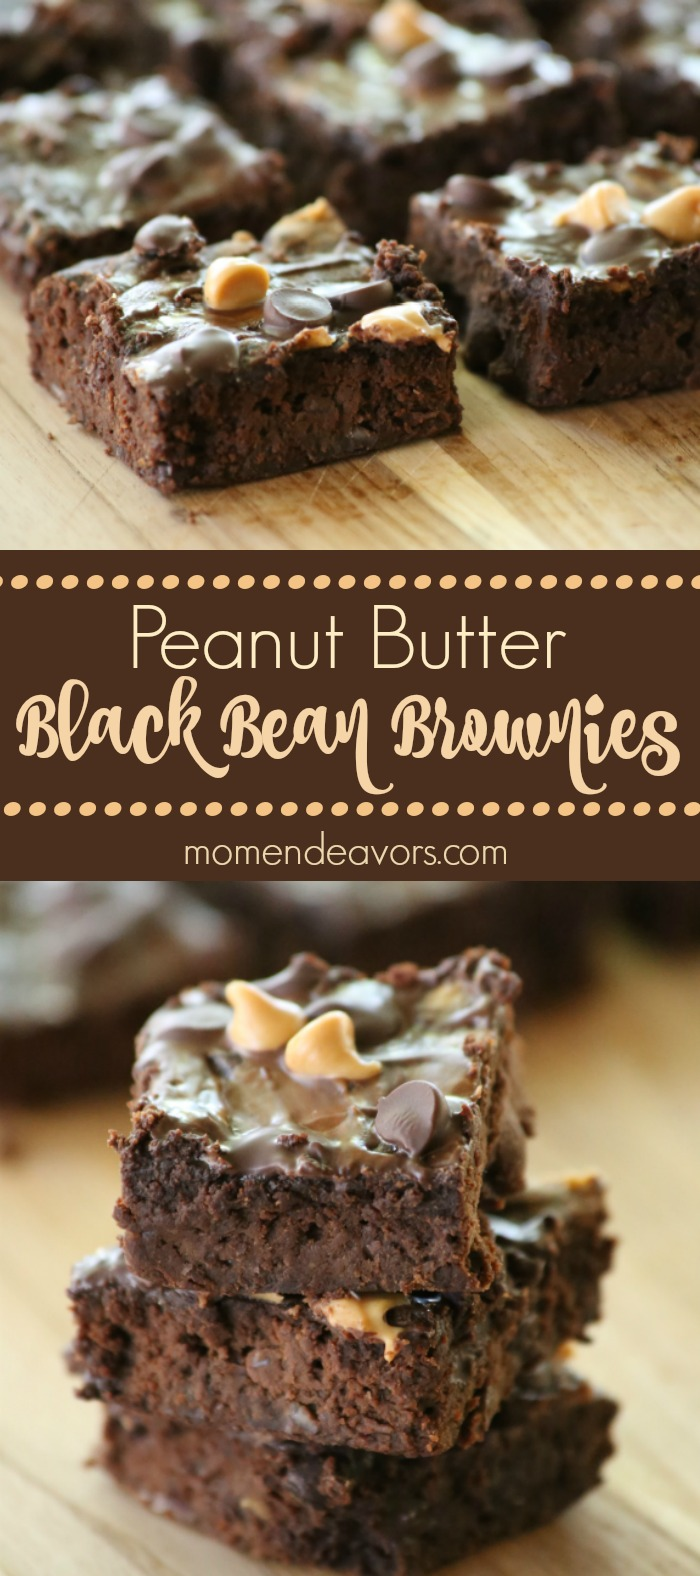 Delicious Peanut Butter Black Bean Brownies